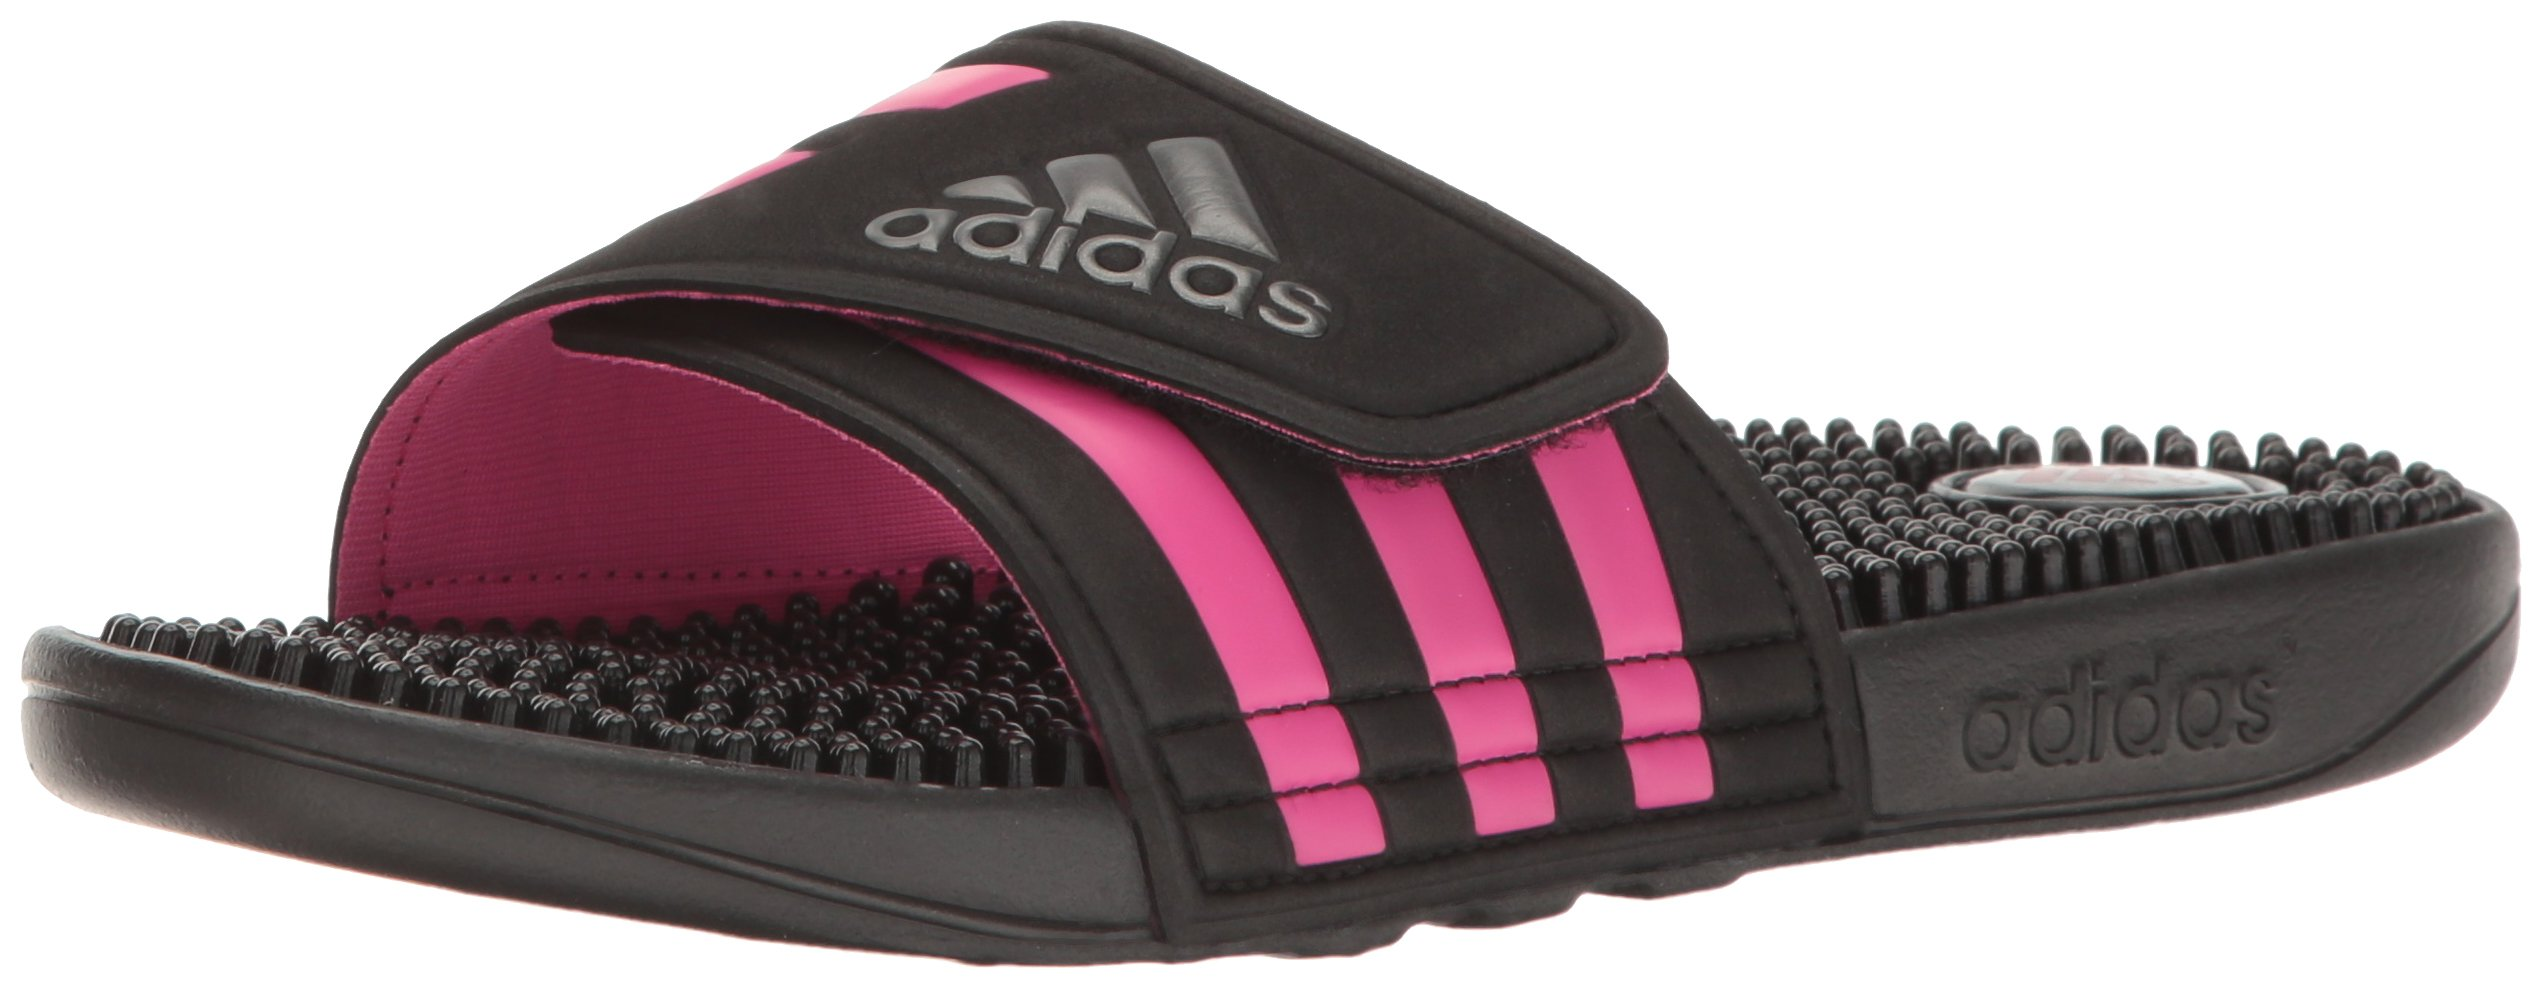 Get Quotations · adidas Originals Women s Adissage W Slide Sandal 37985f125